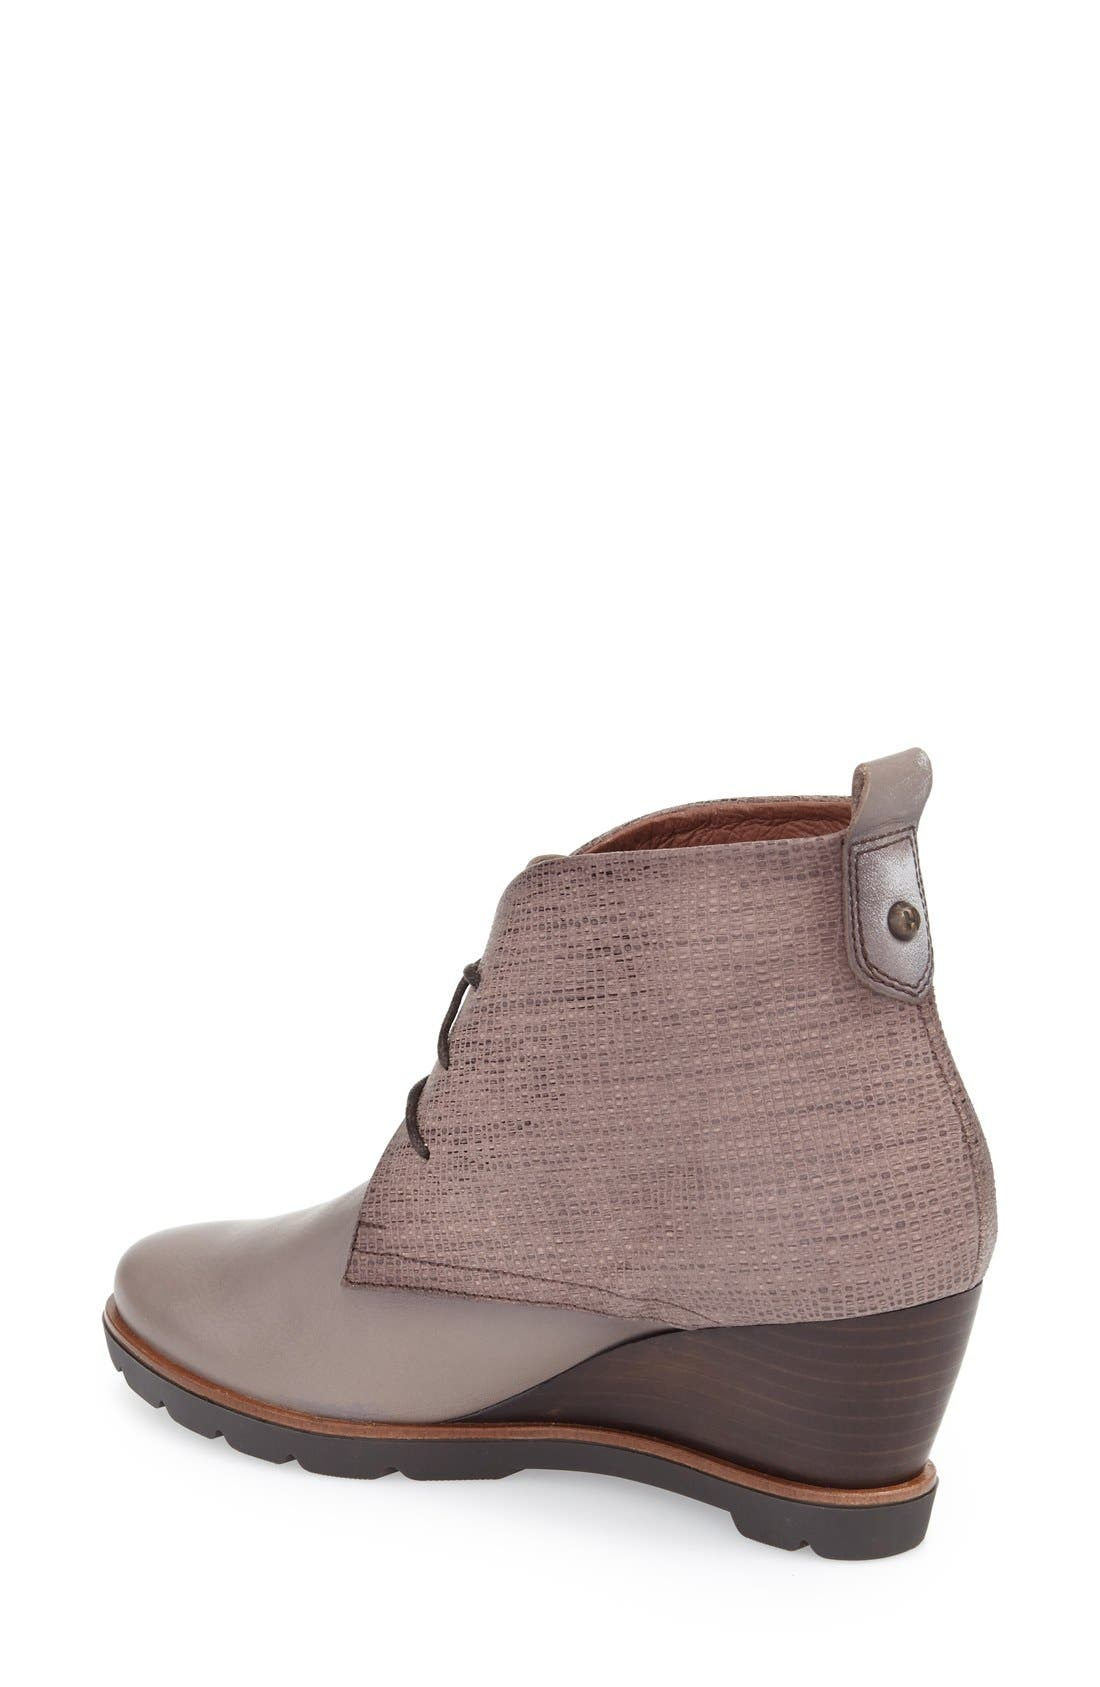 'Harmonie' Lace-Up Wedge Bootie,                             Alternate thumbnail 2, color,                             Brown Leather